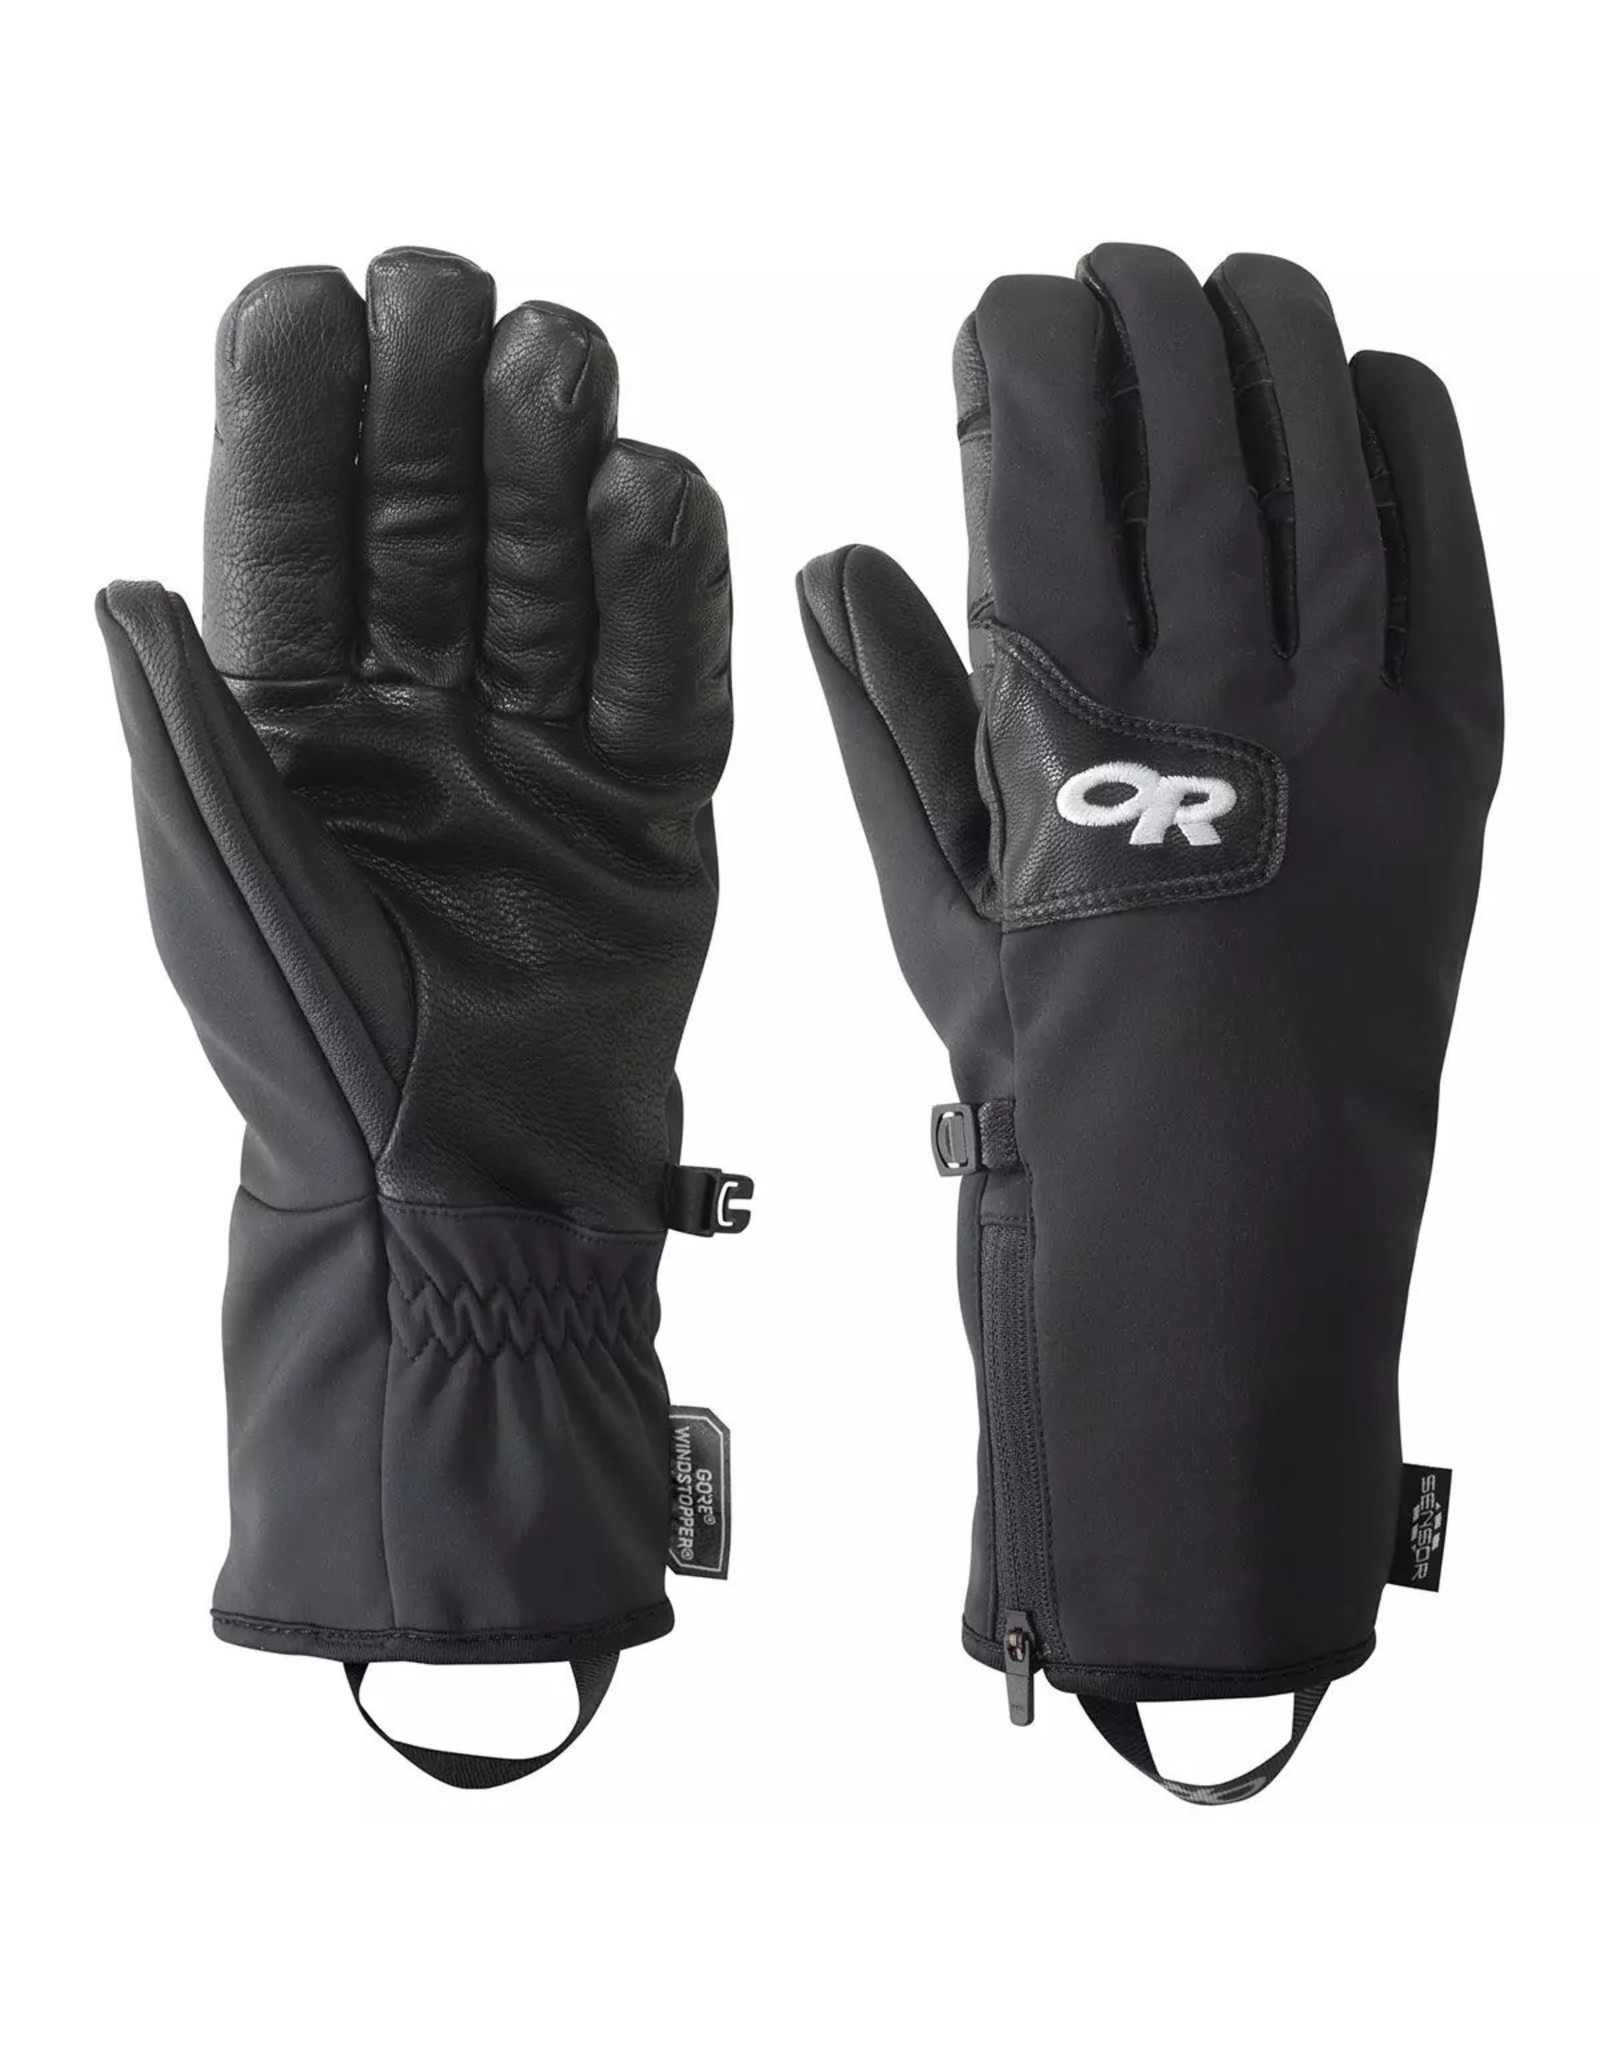 OUTDOOR RESEARCH OR WOMEN'S STORMTRACKER SENSOR GLOVES